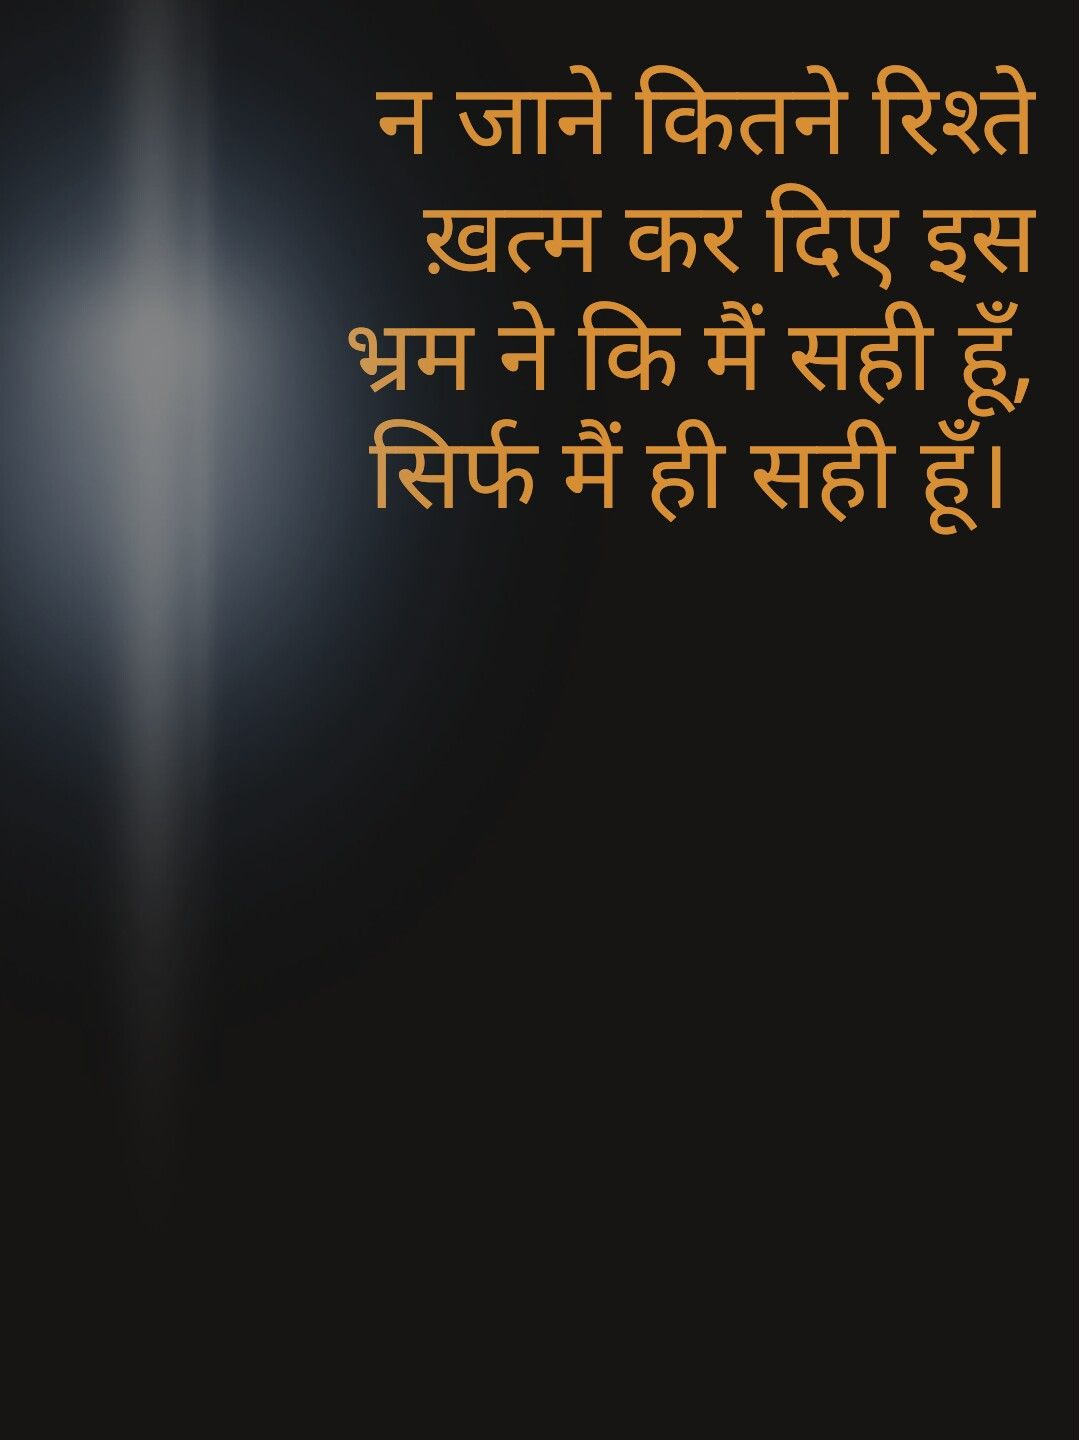 Life Ego Hindi Hindi Quotes Shayari ह द स व च र